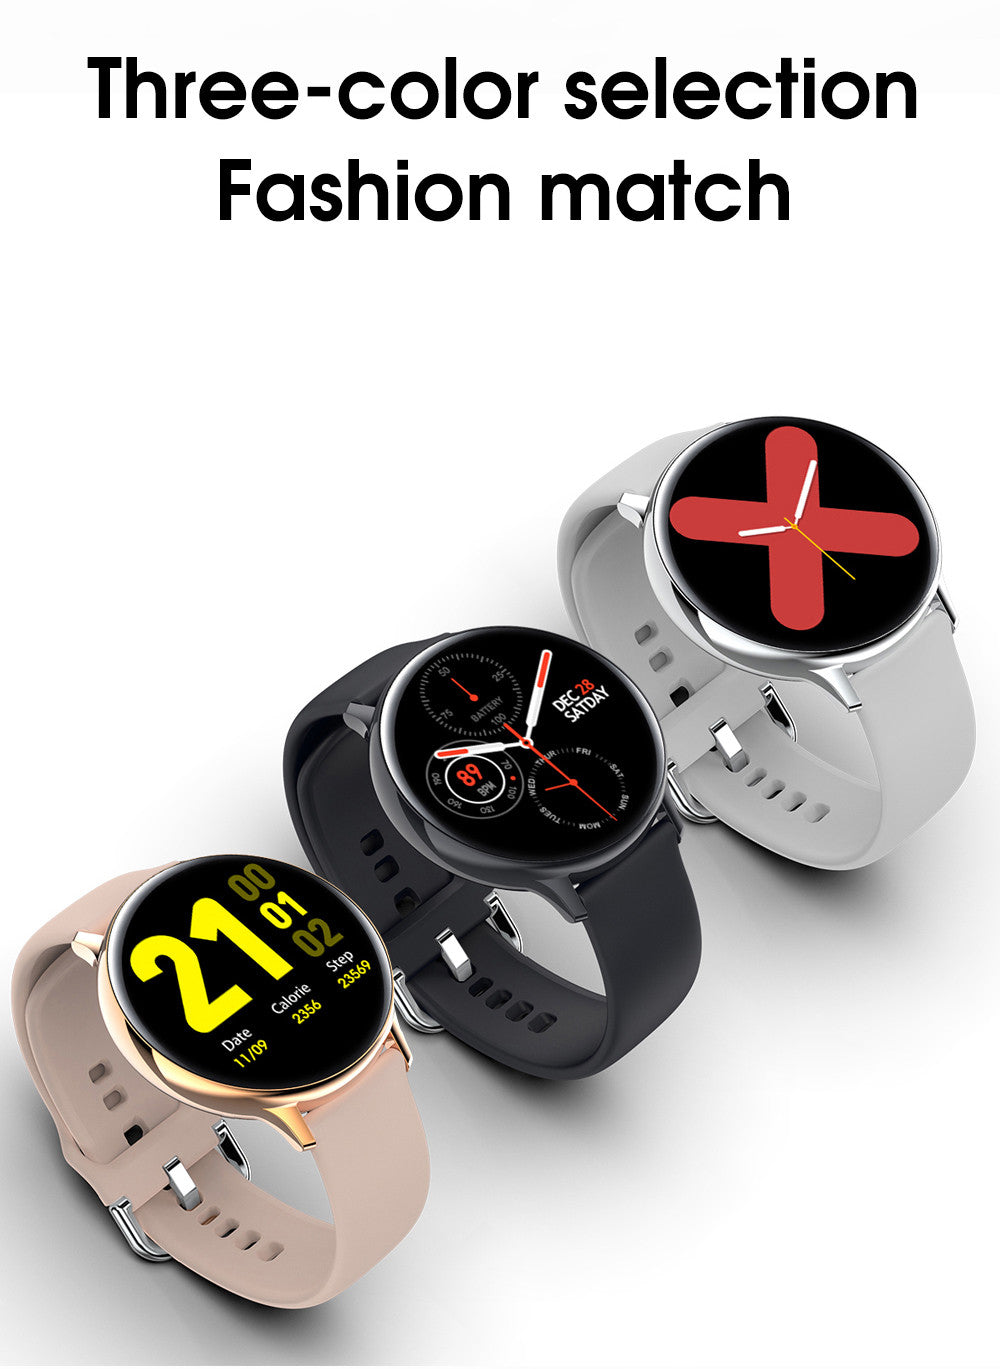 S20 Smart Watch_Detailed information15